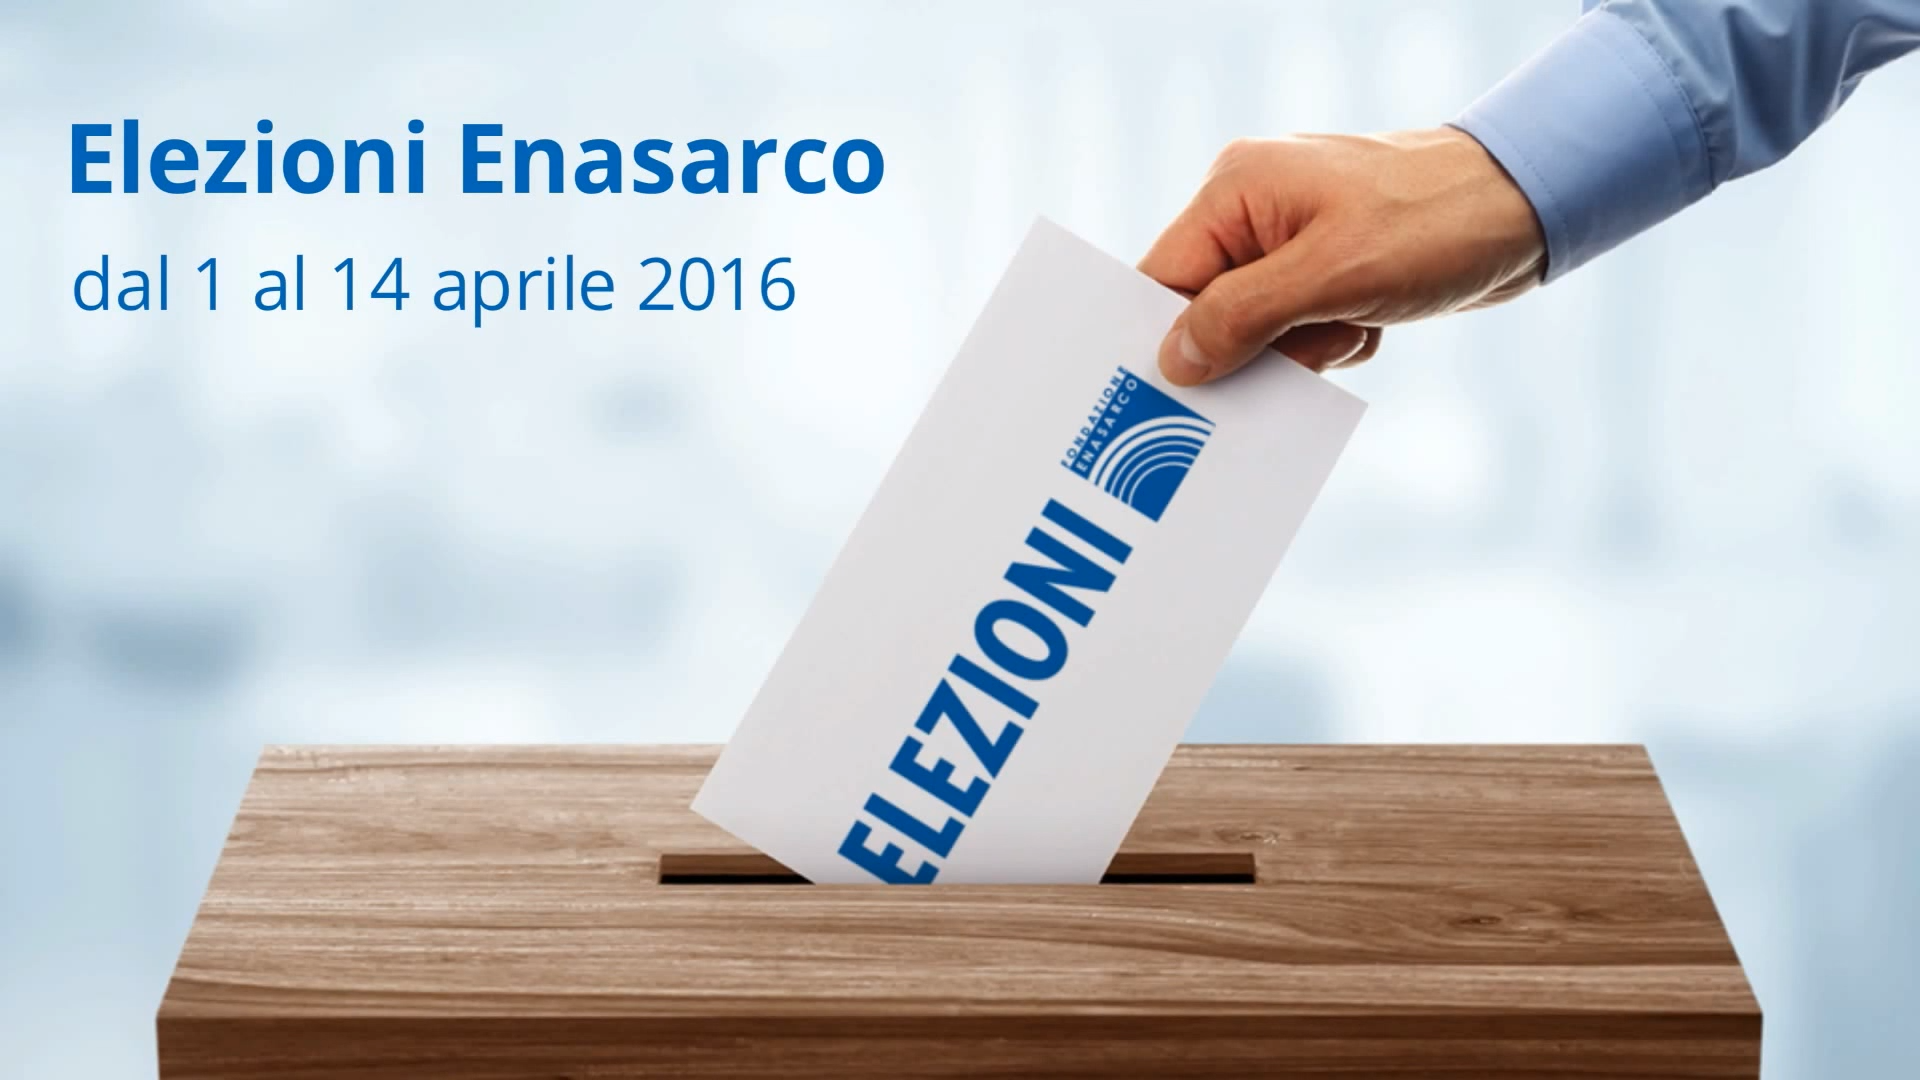 Video - Elezioni Enasarco 2016 - Come si vota